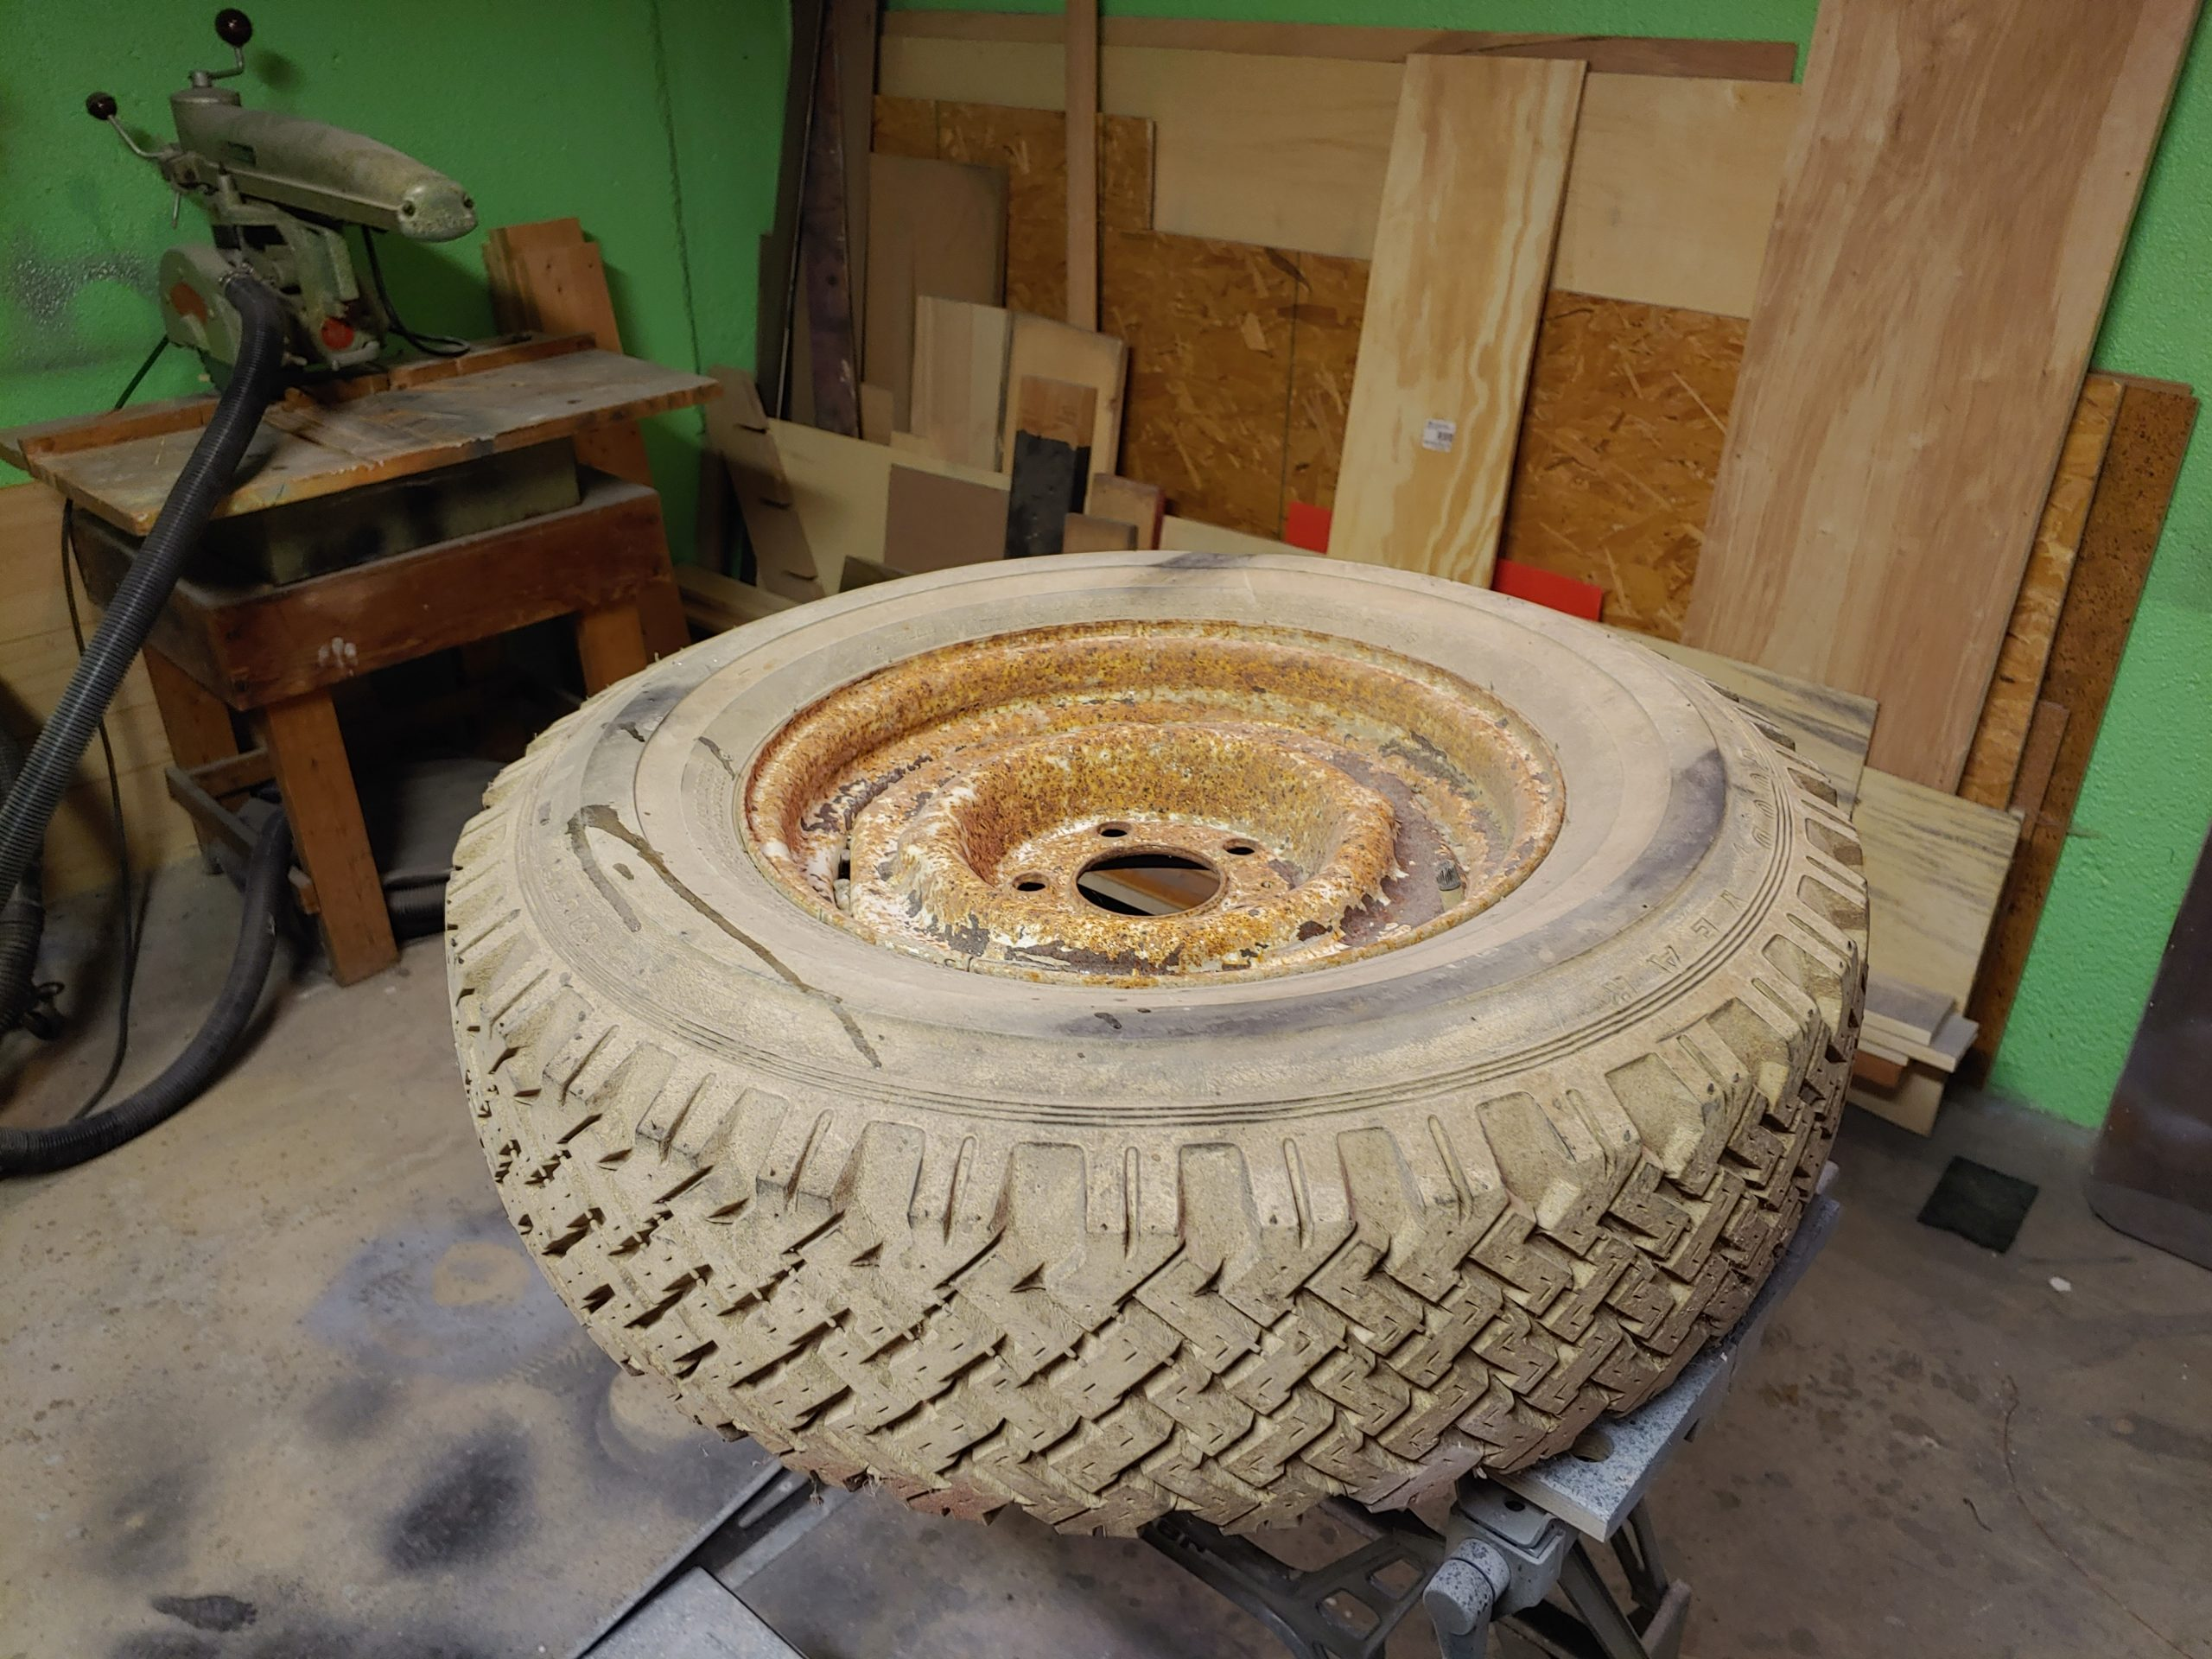 Repurpose Old Tires & Wheels